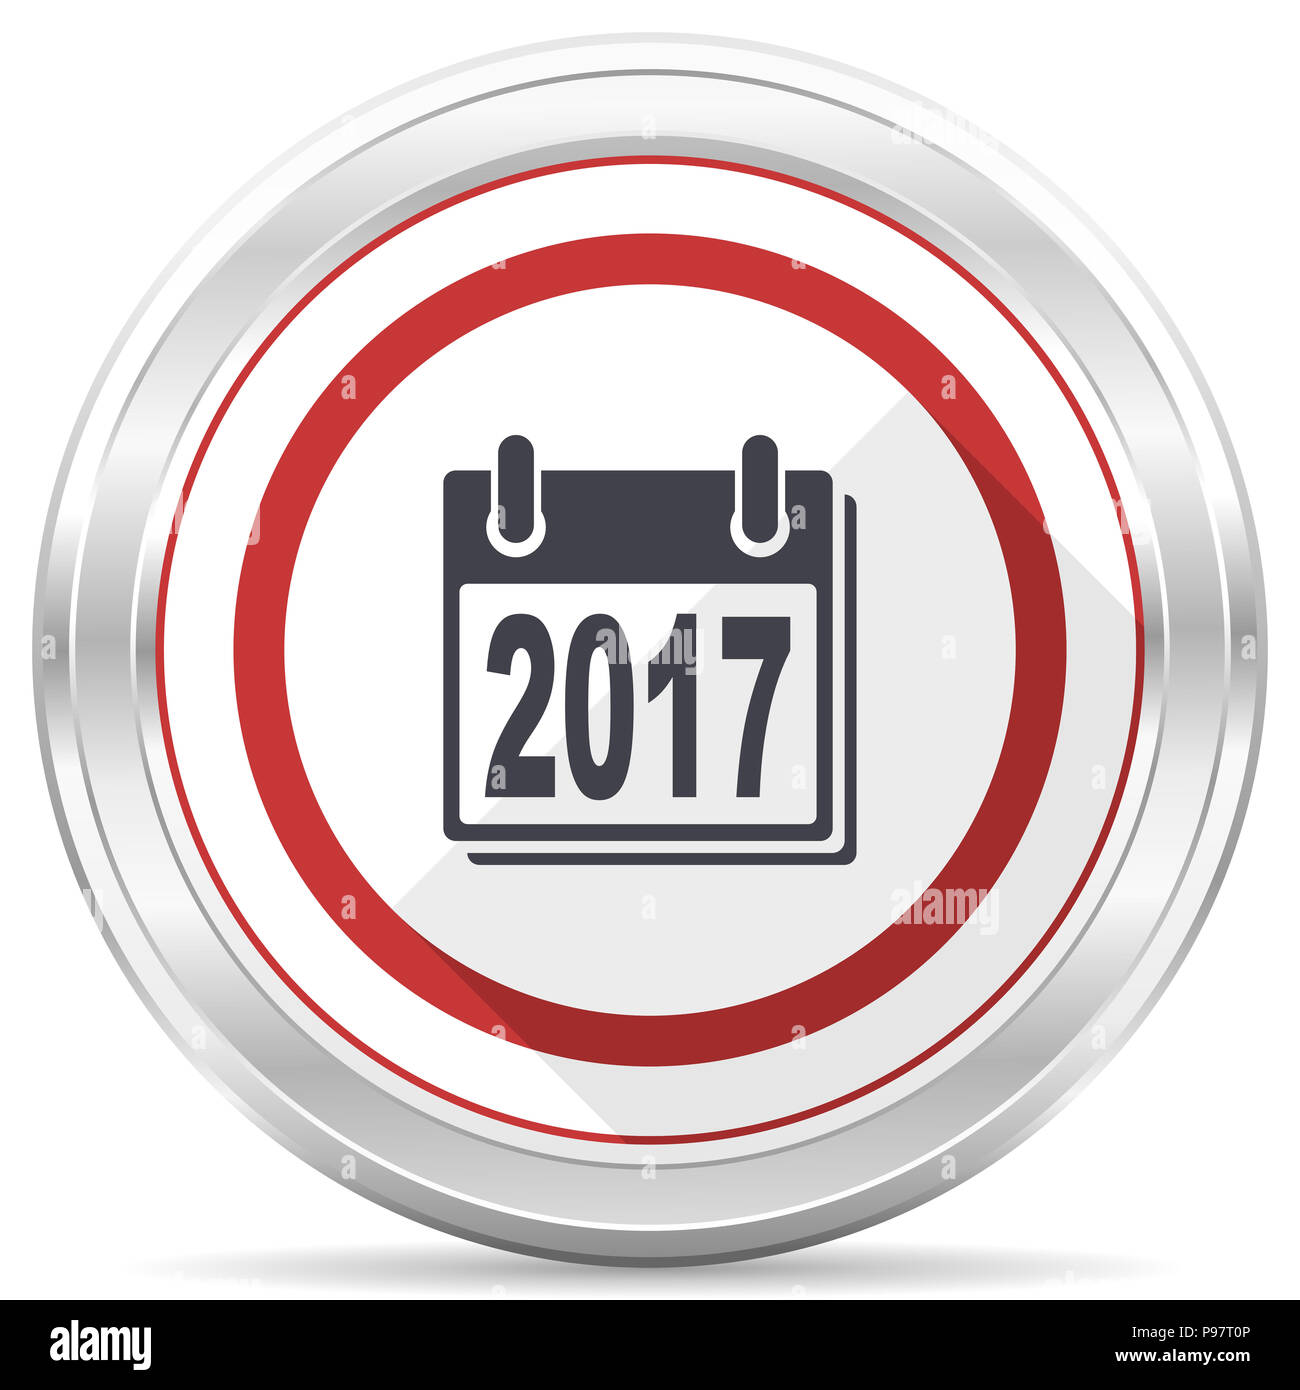 new year 2017 silver metallic chrome border round web icon on white background stock image